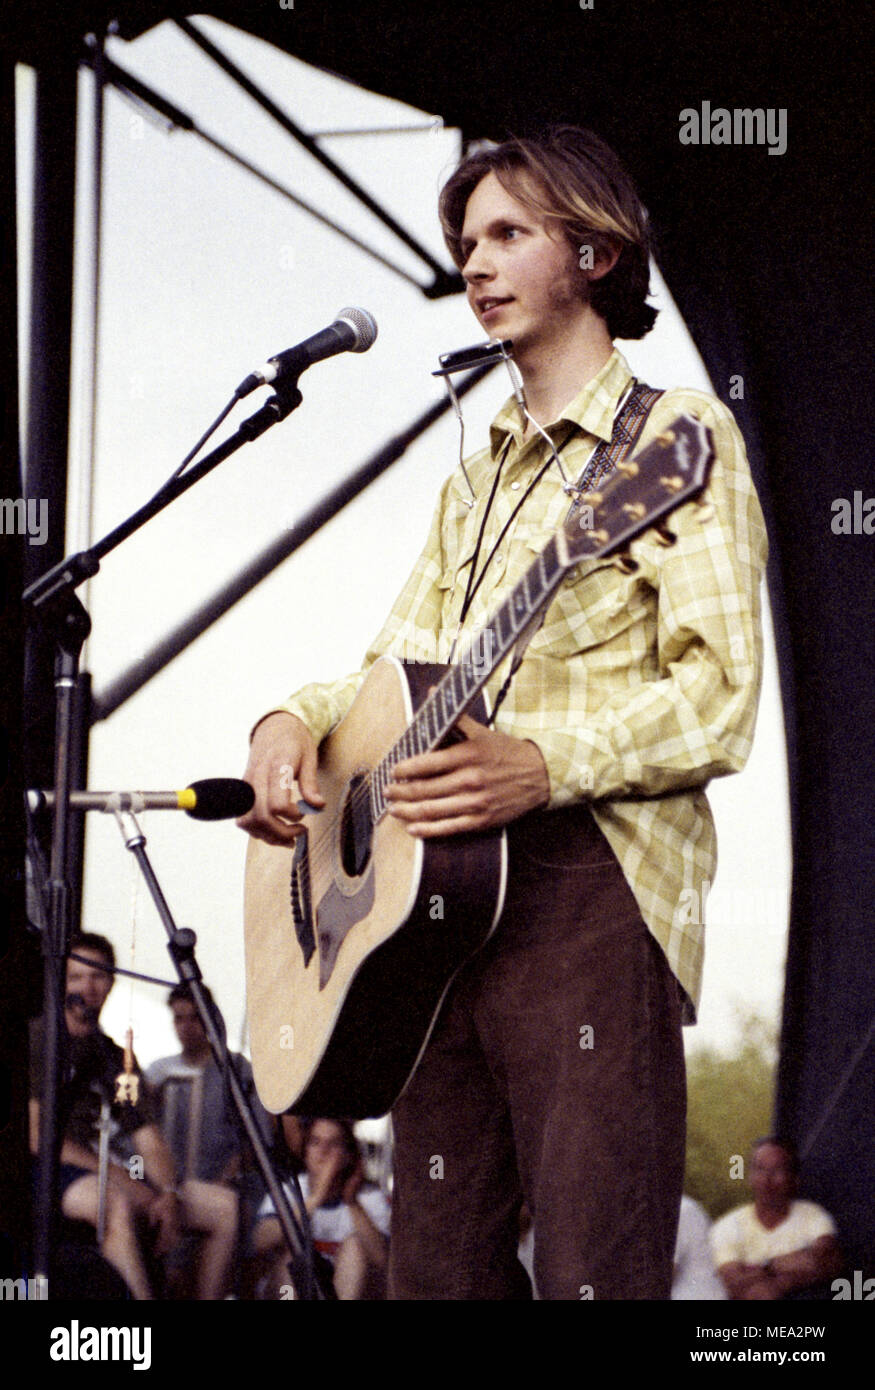 Recording artist Beck, with acoustic guitar, on stage at the Lollapalooza music festival in Tinley Park, Illinois, in 1995. - Stock Image